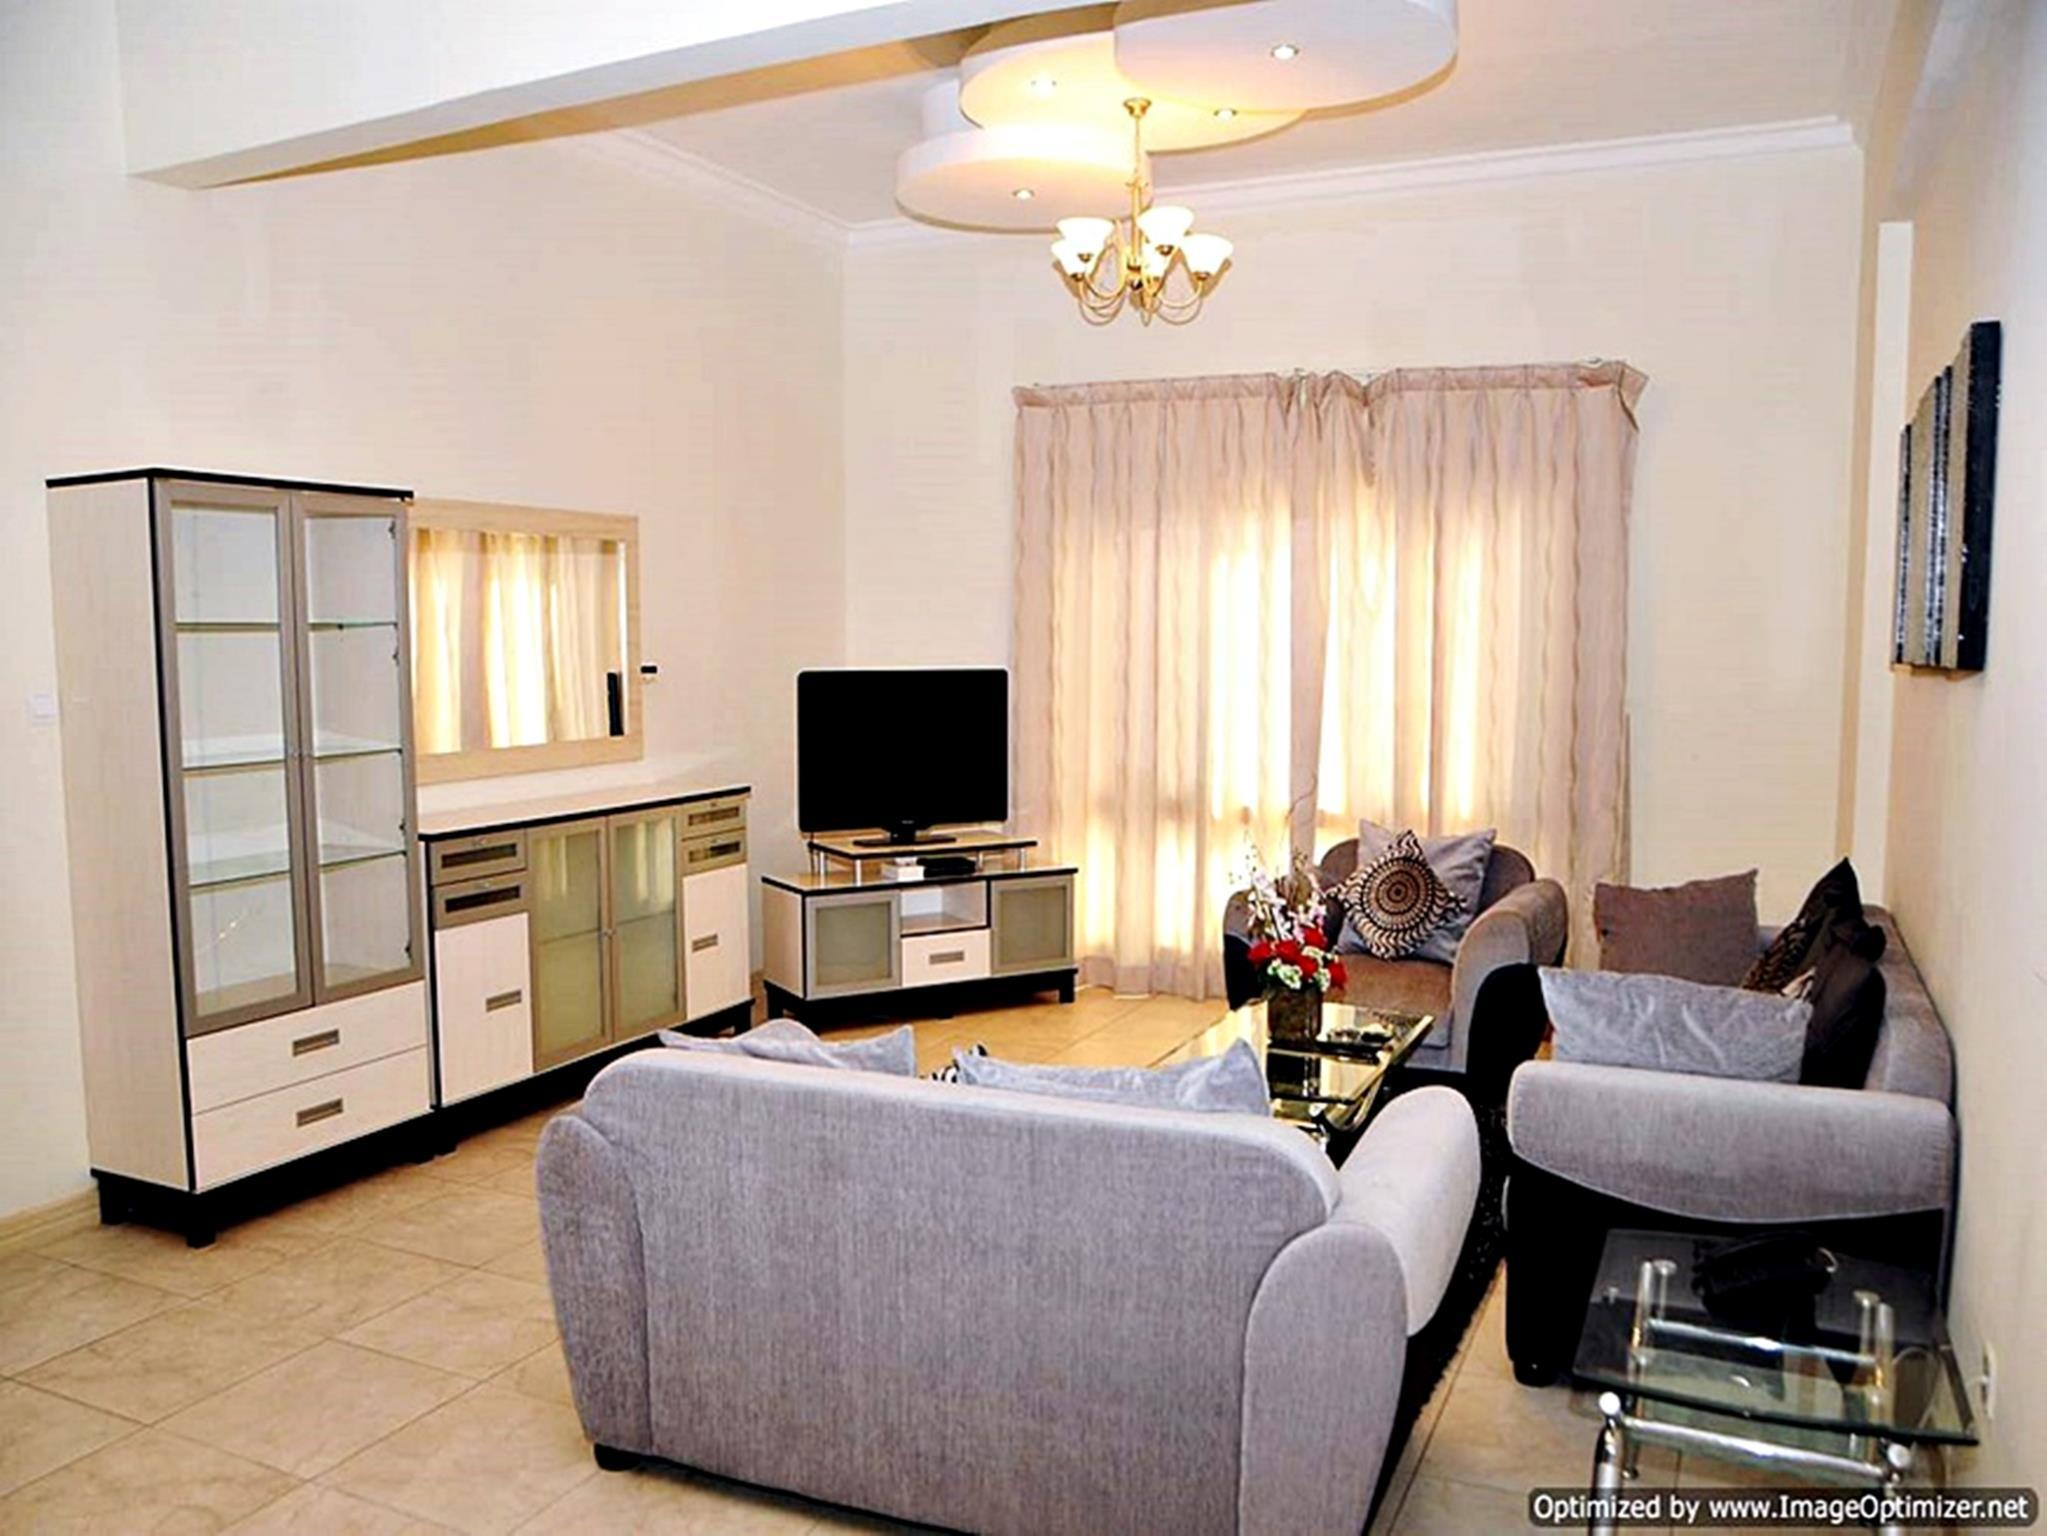 Apartament z jedną sypialnią (One Bedroom Apartment)